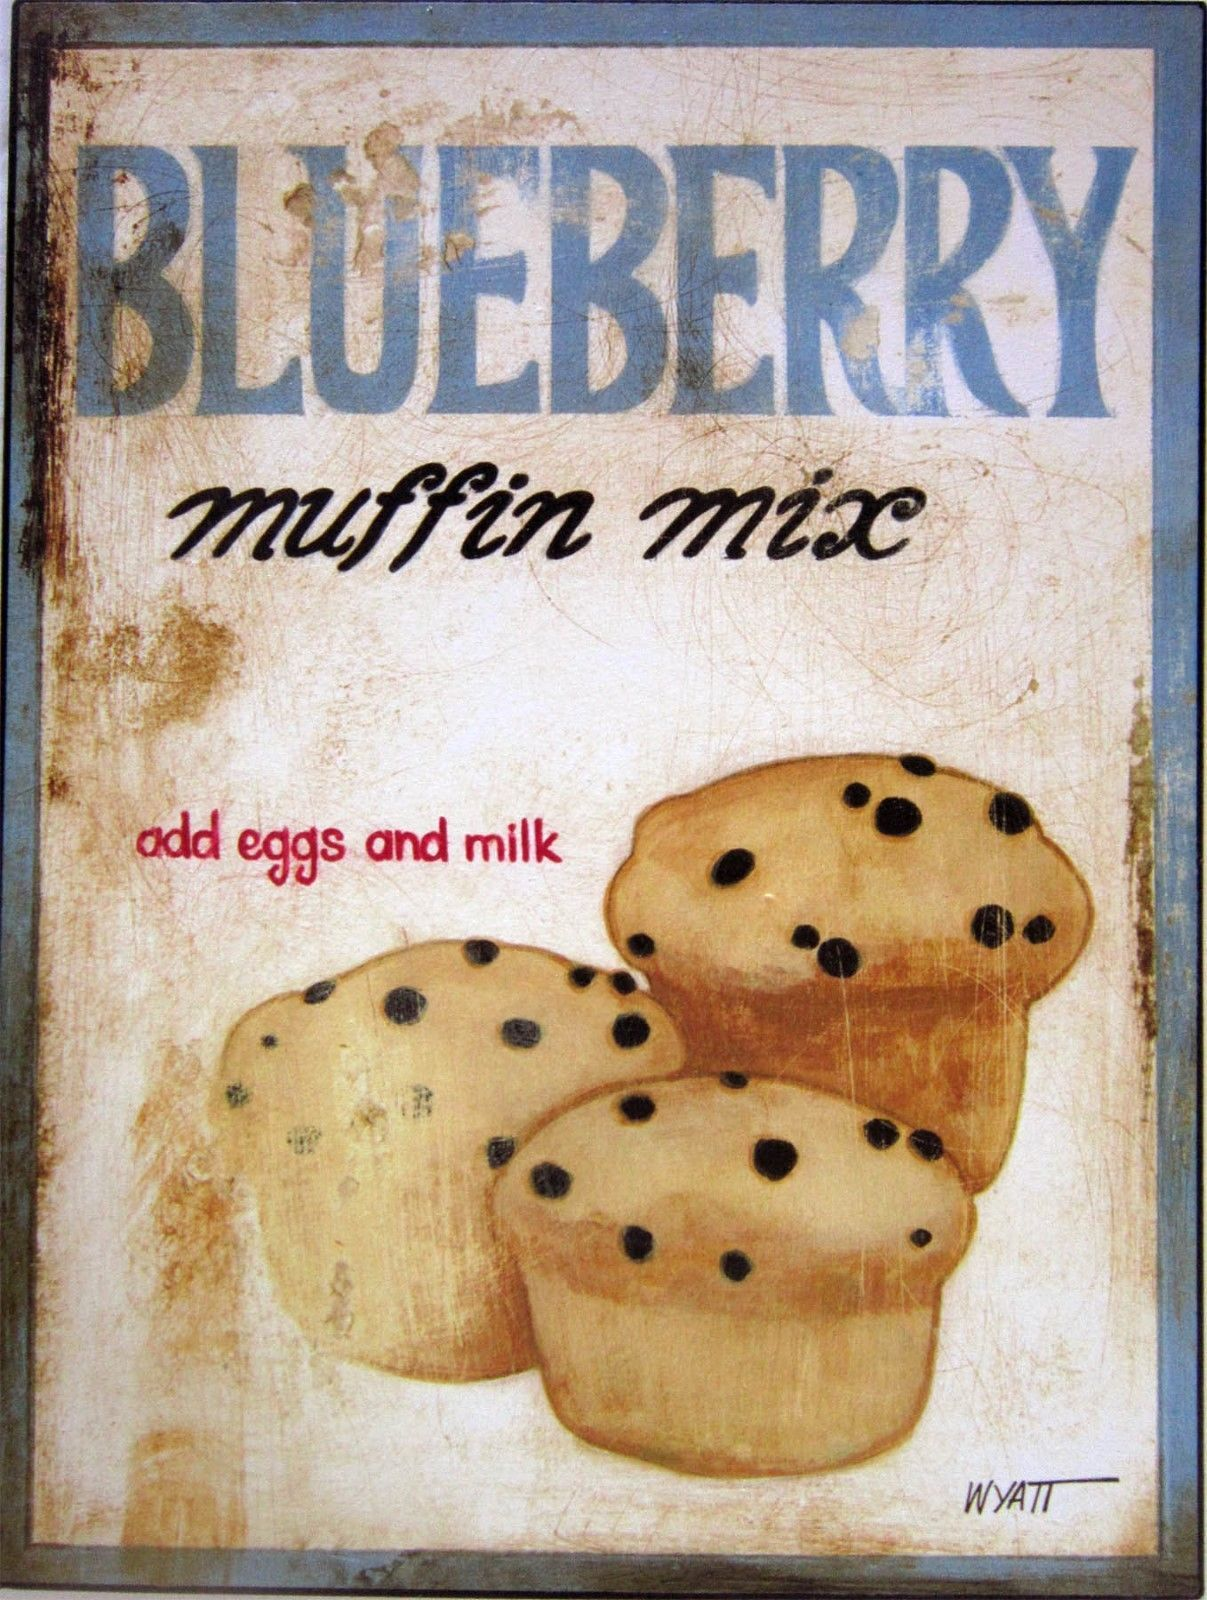 Blueberry Muffin Mix (metal sign)